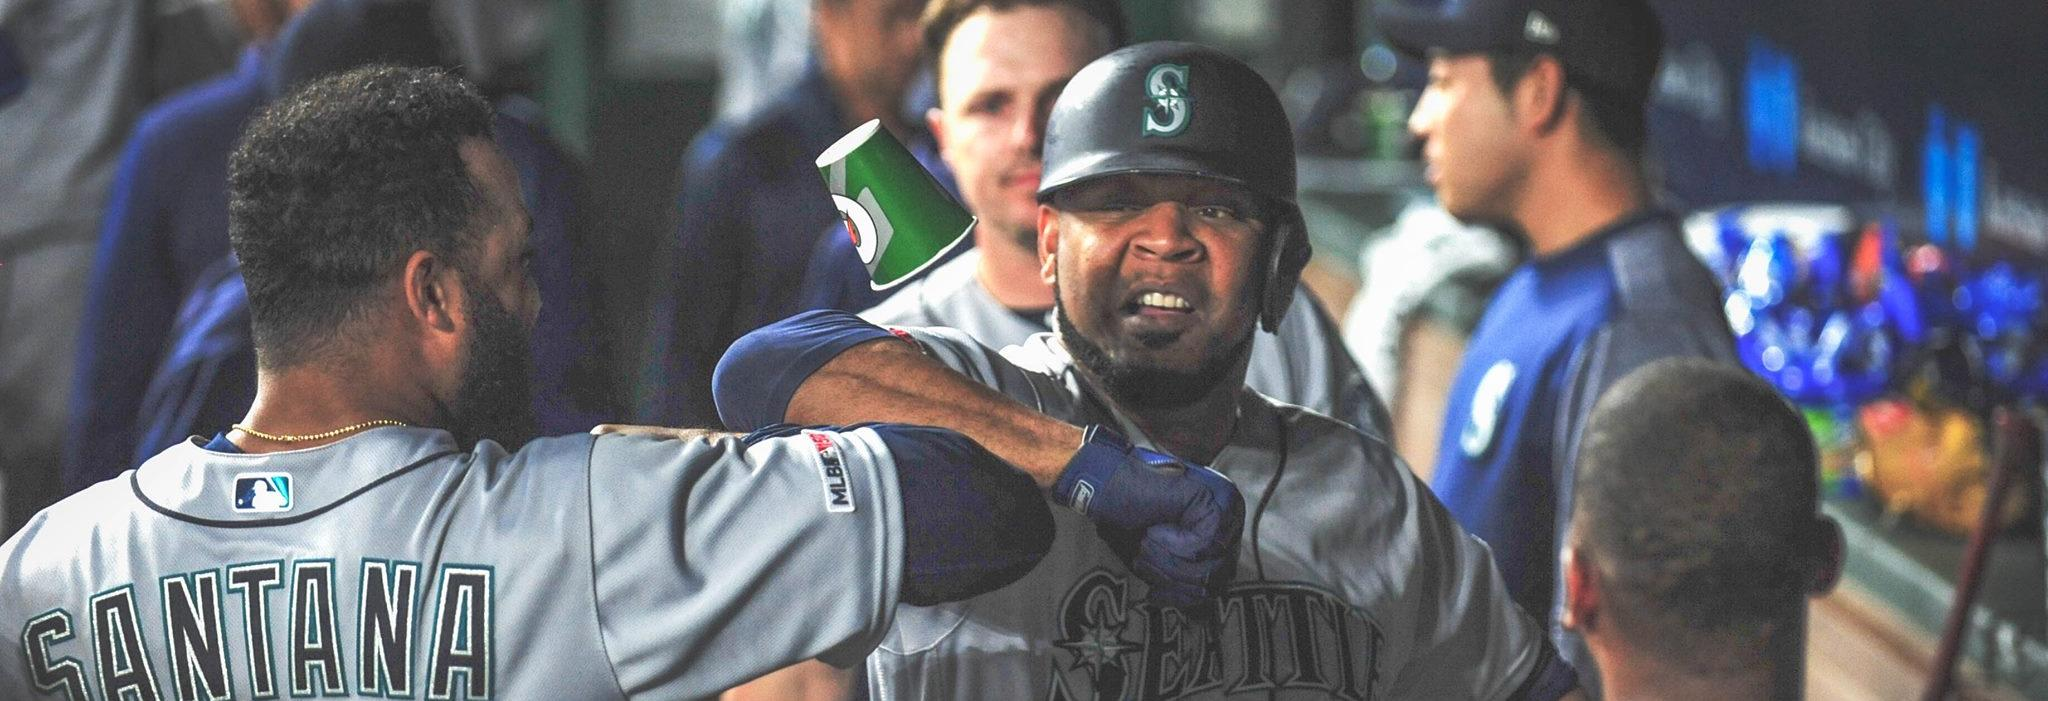 Seattle Mariners banner image